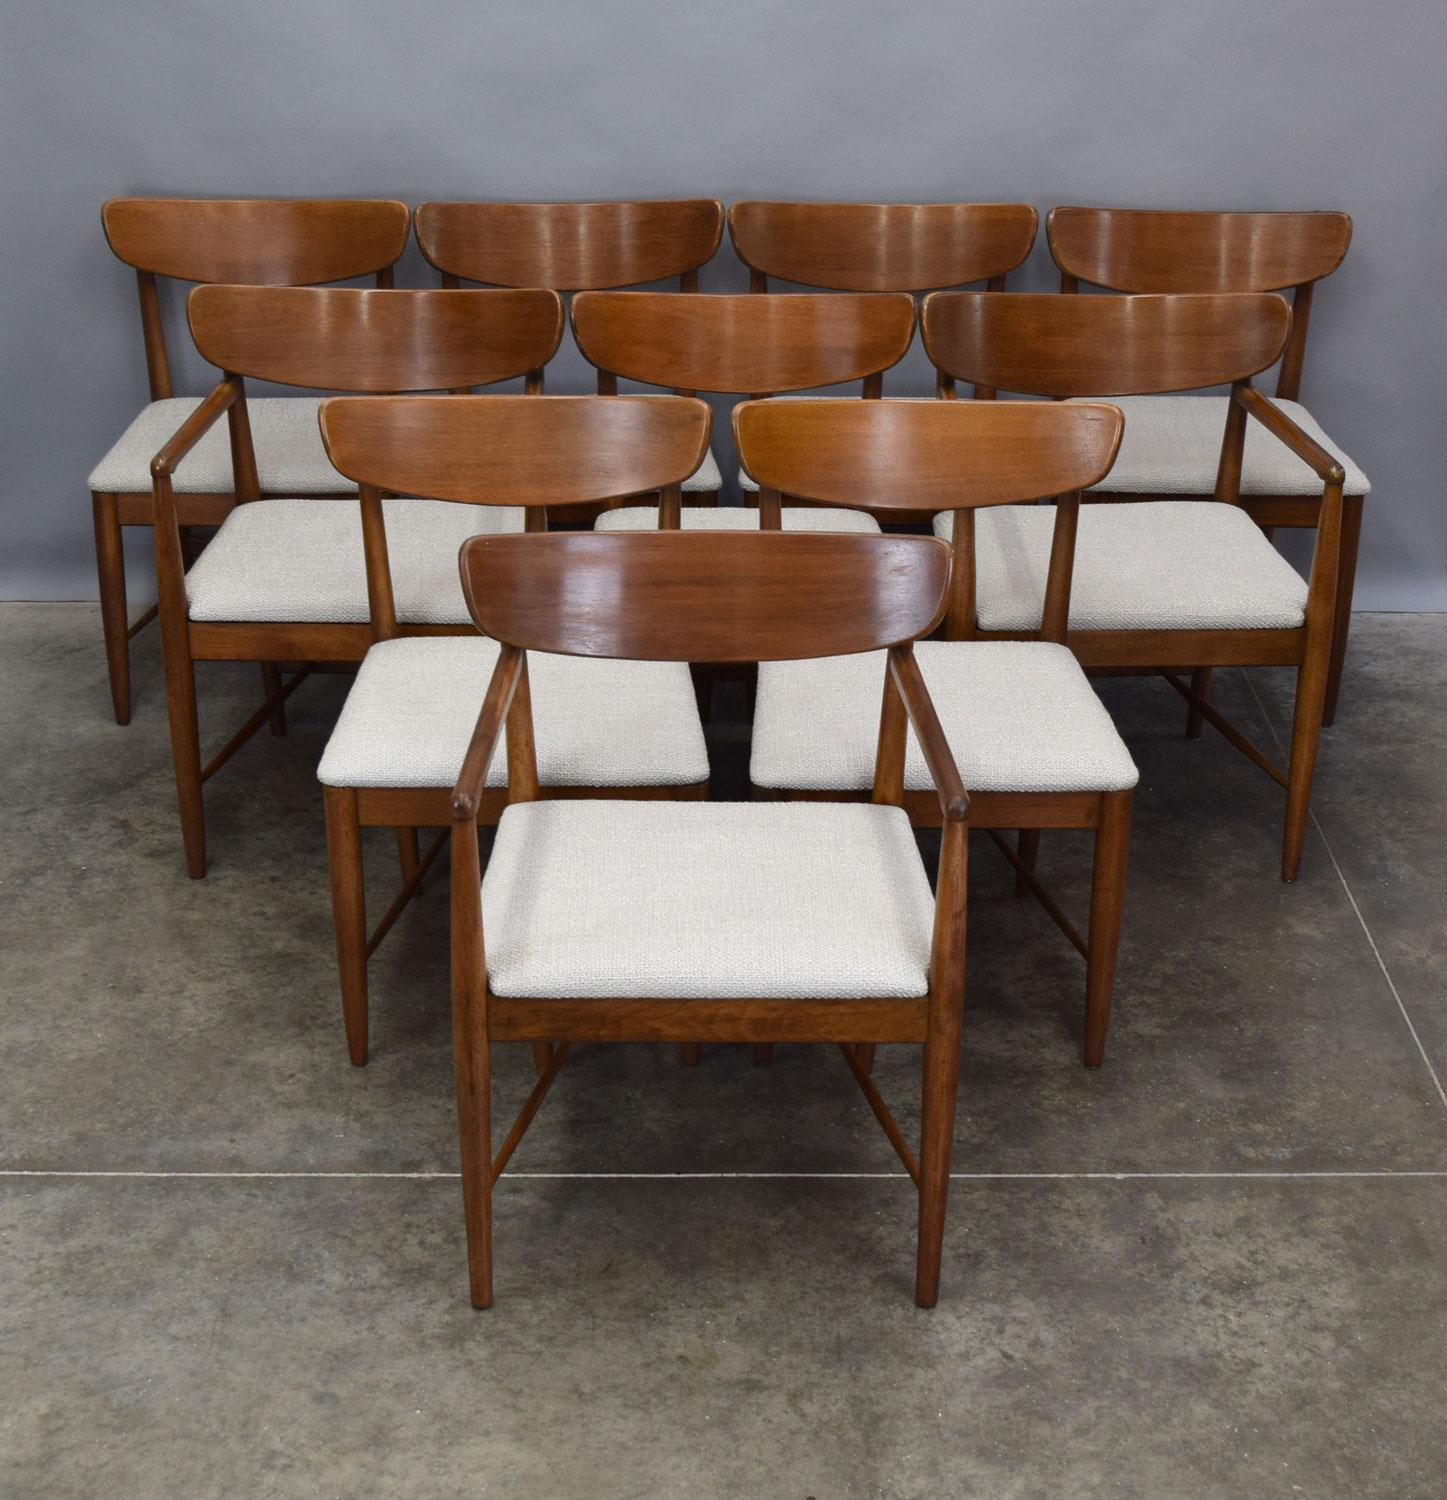 Charmant American Of Martinsville American Of Martinsville U0027Daniau0027 Dining Chairs    Set Of 10 For